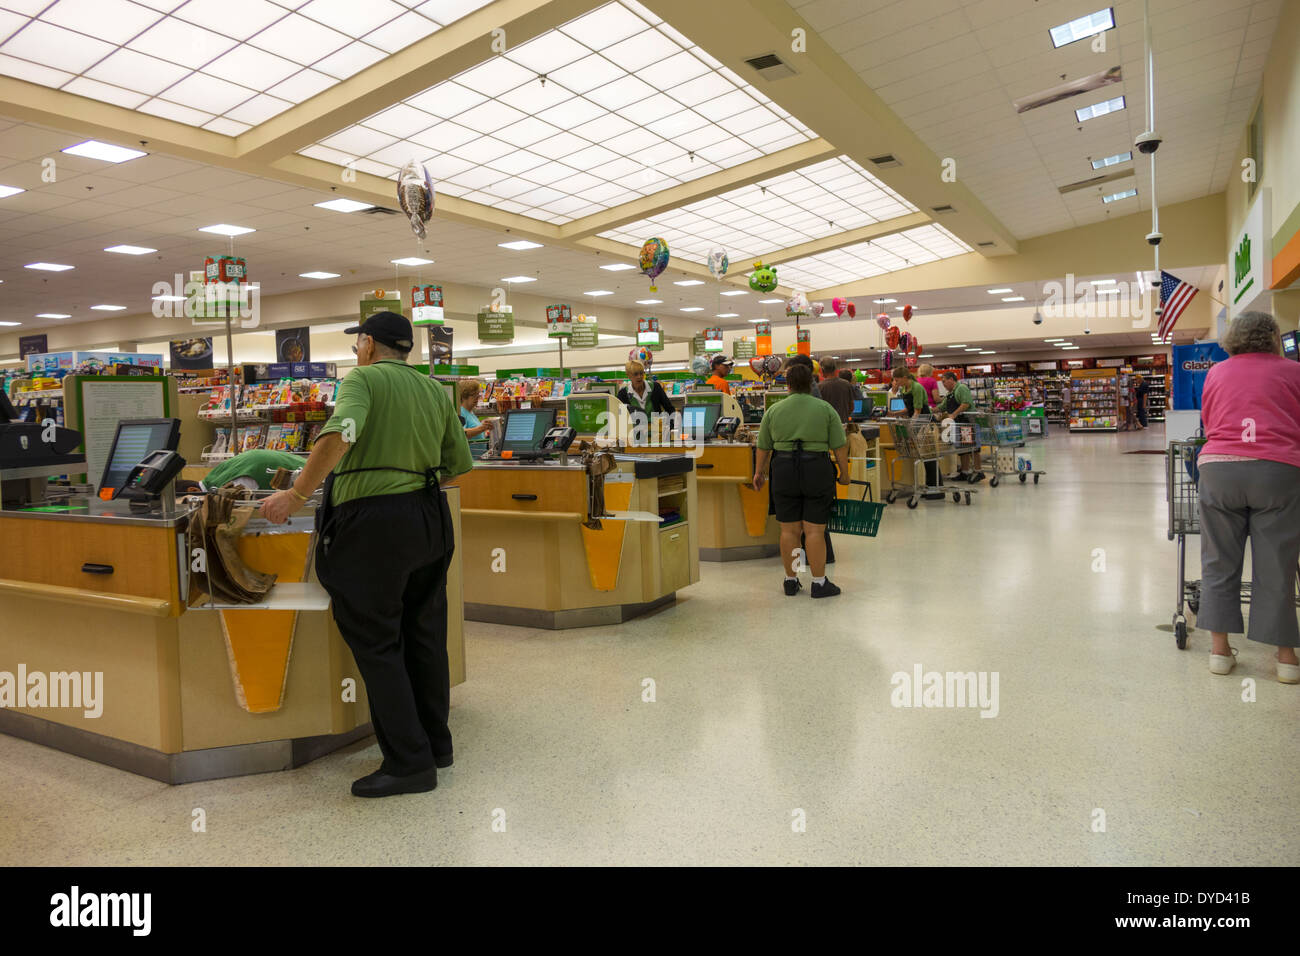 Florida Shopping Shopper Shoppers Shop Shops Stock Photos & Florida ...